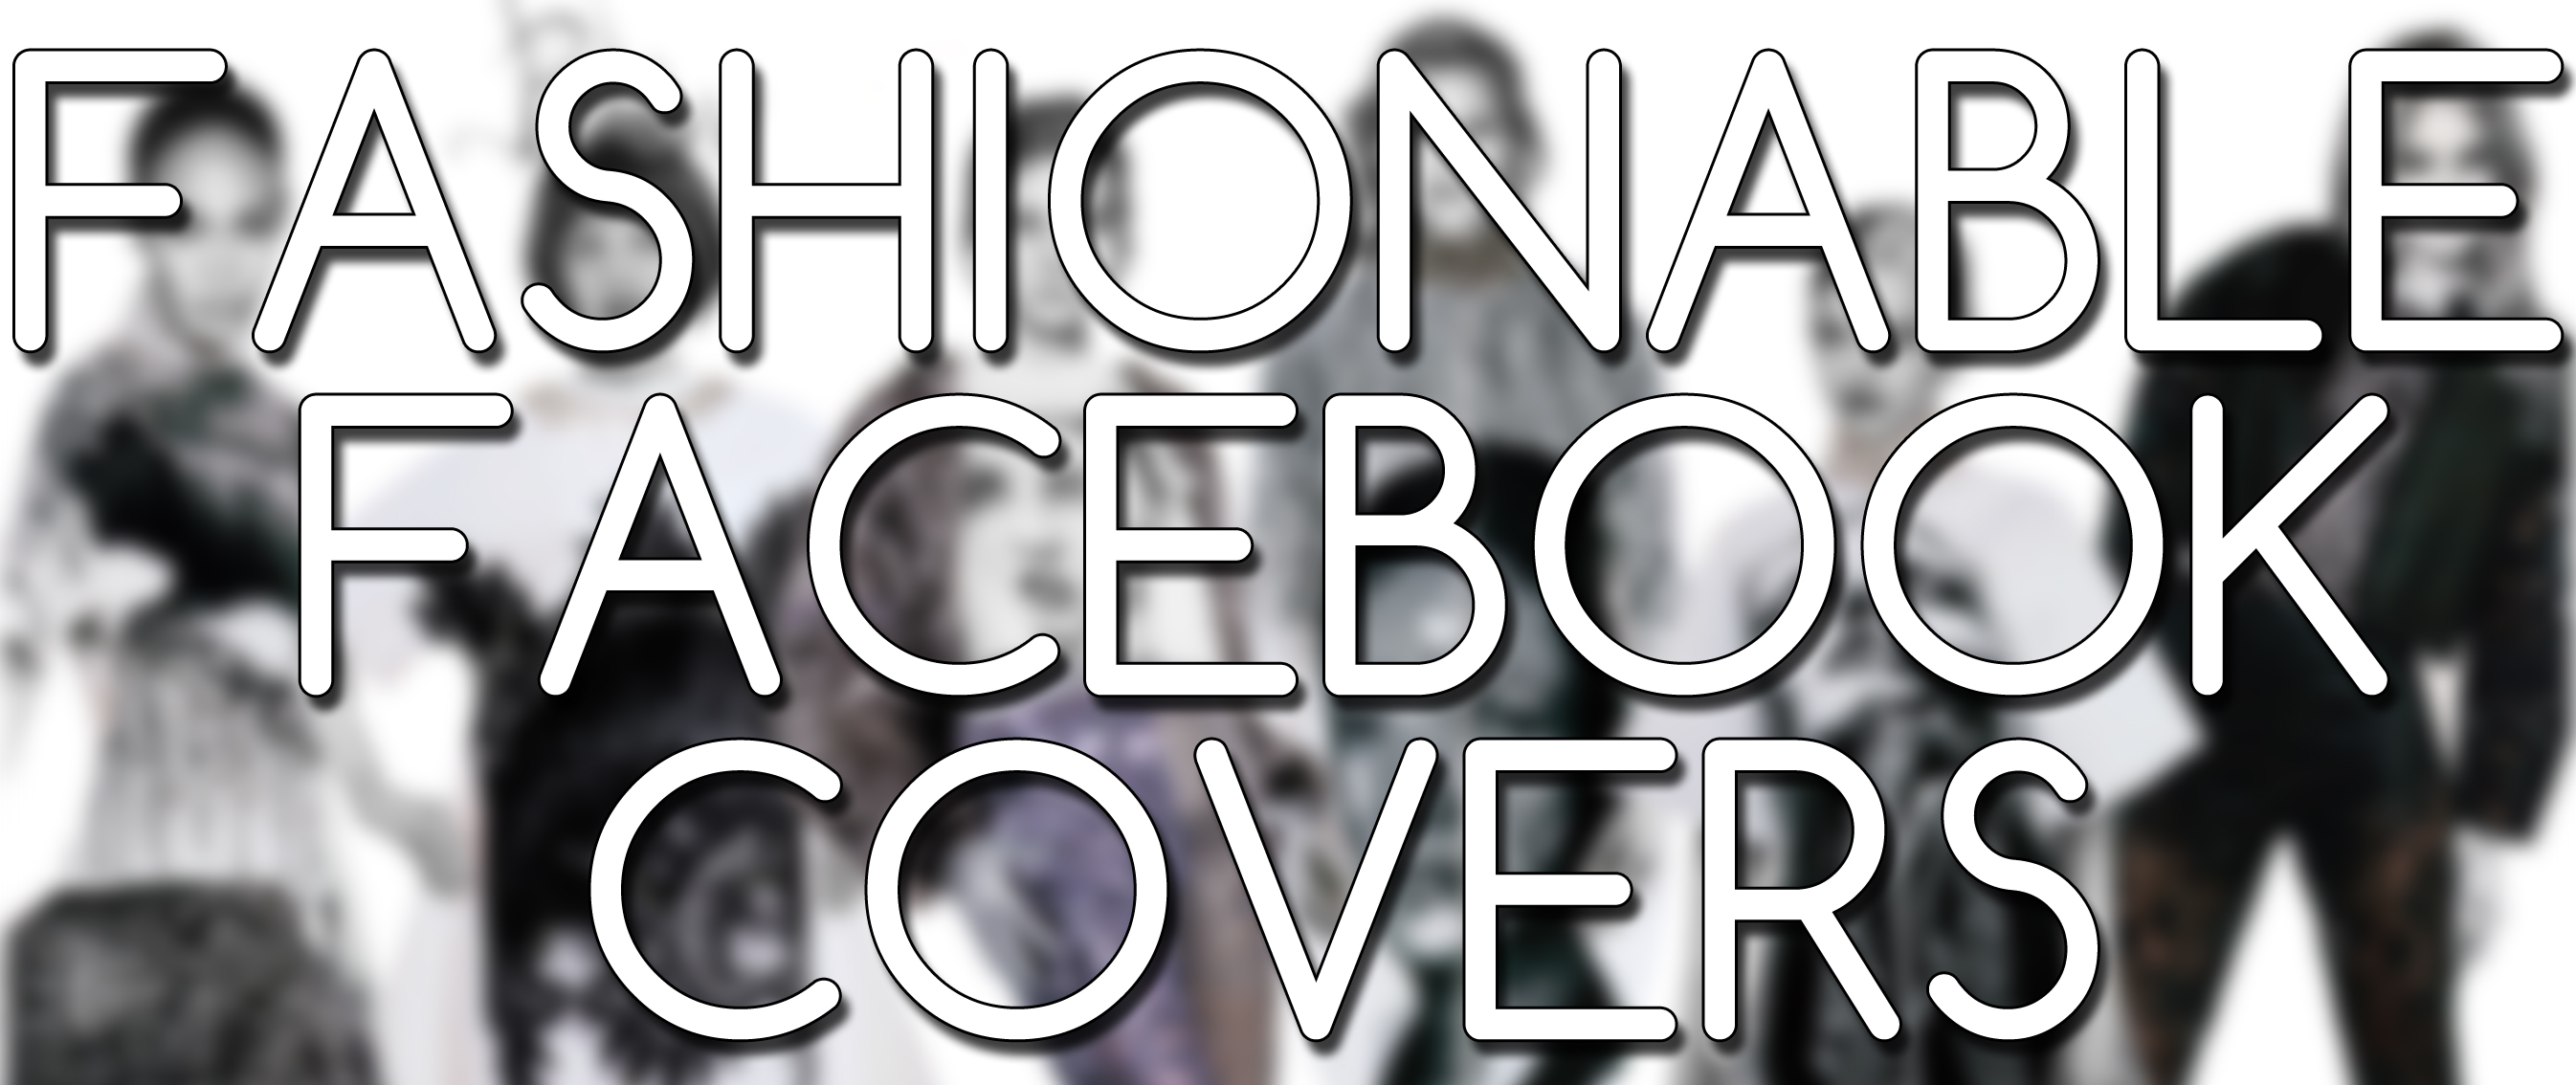 Fashion Covers Tumblr Fashionable Facebook Covers